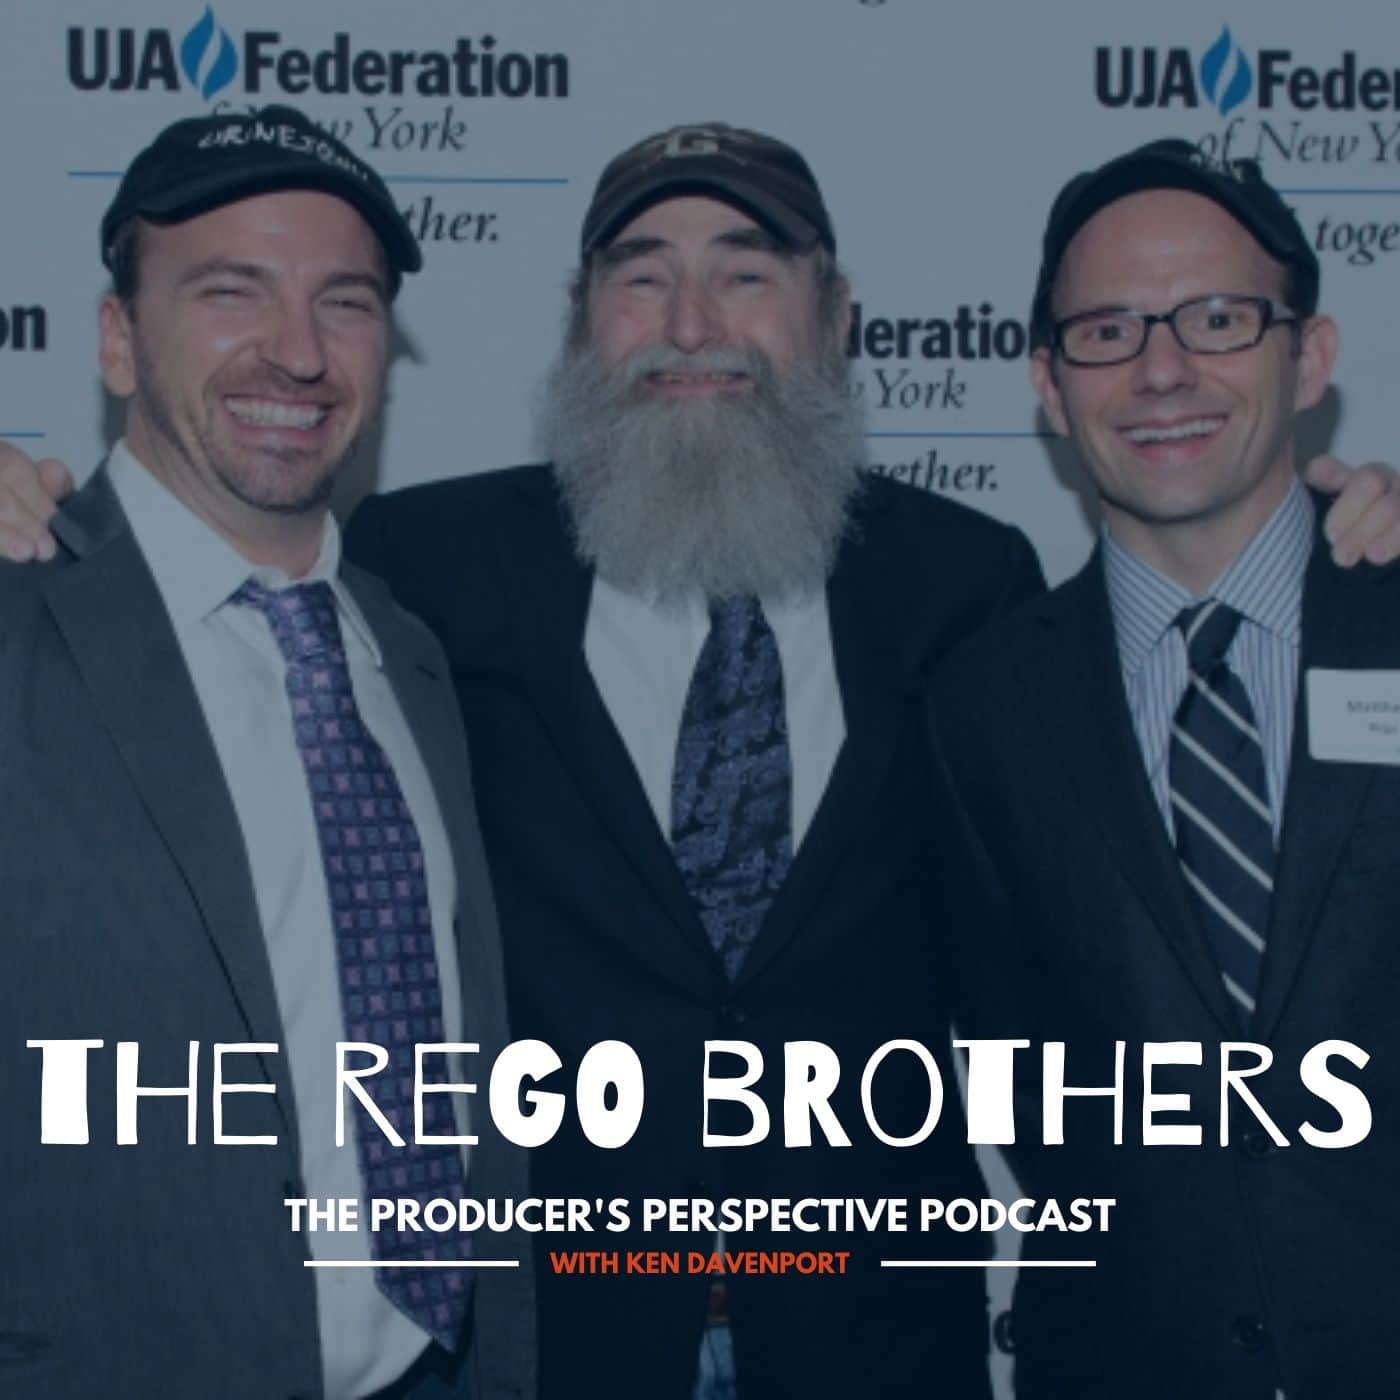 Ken Davenport's The Producer's Perspective Podcast Episode 105 - The Rego Brothers